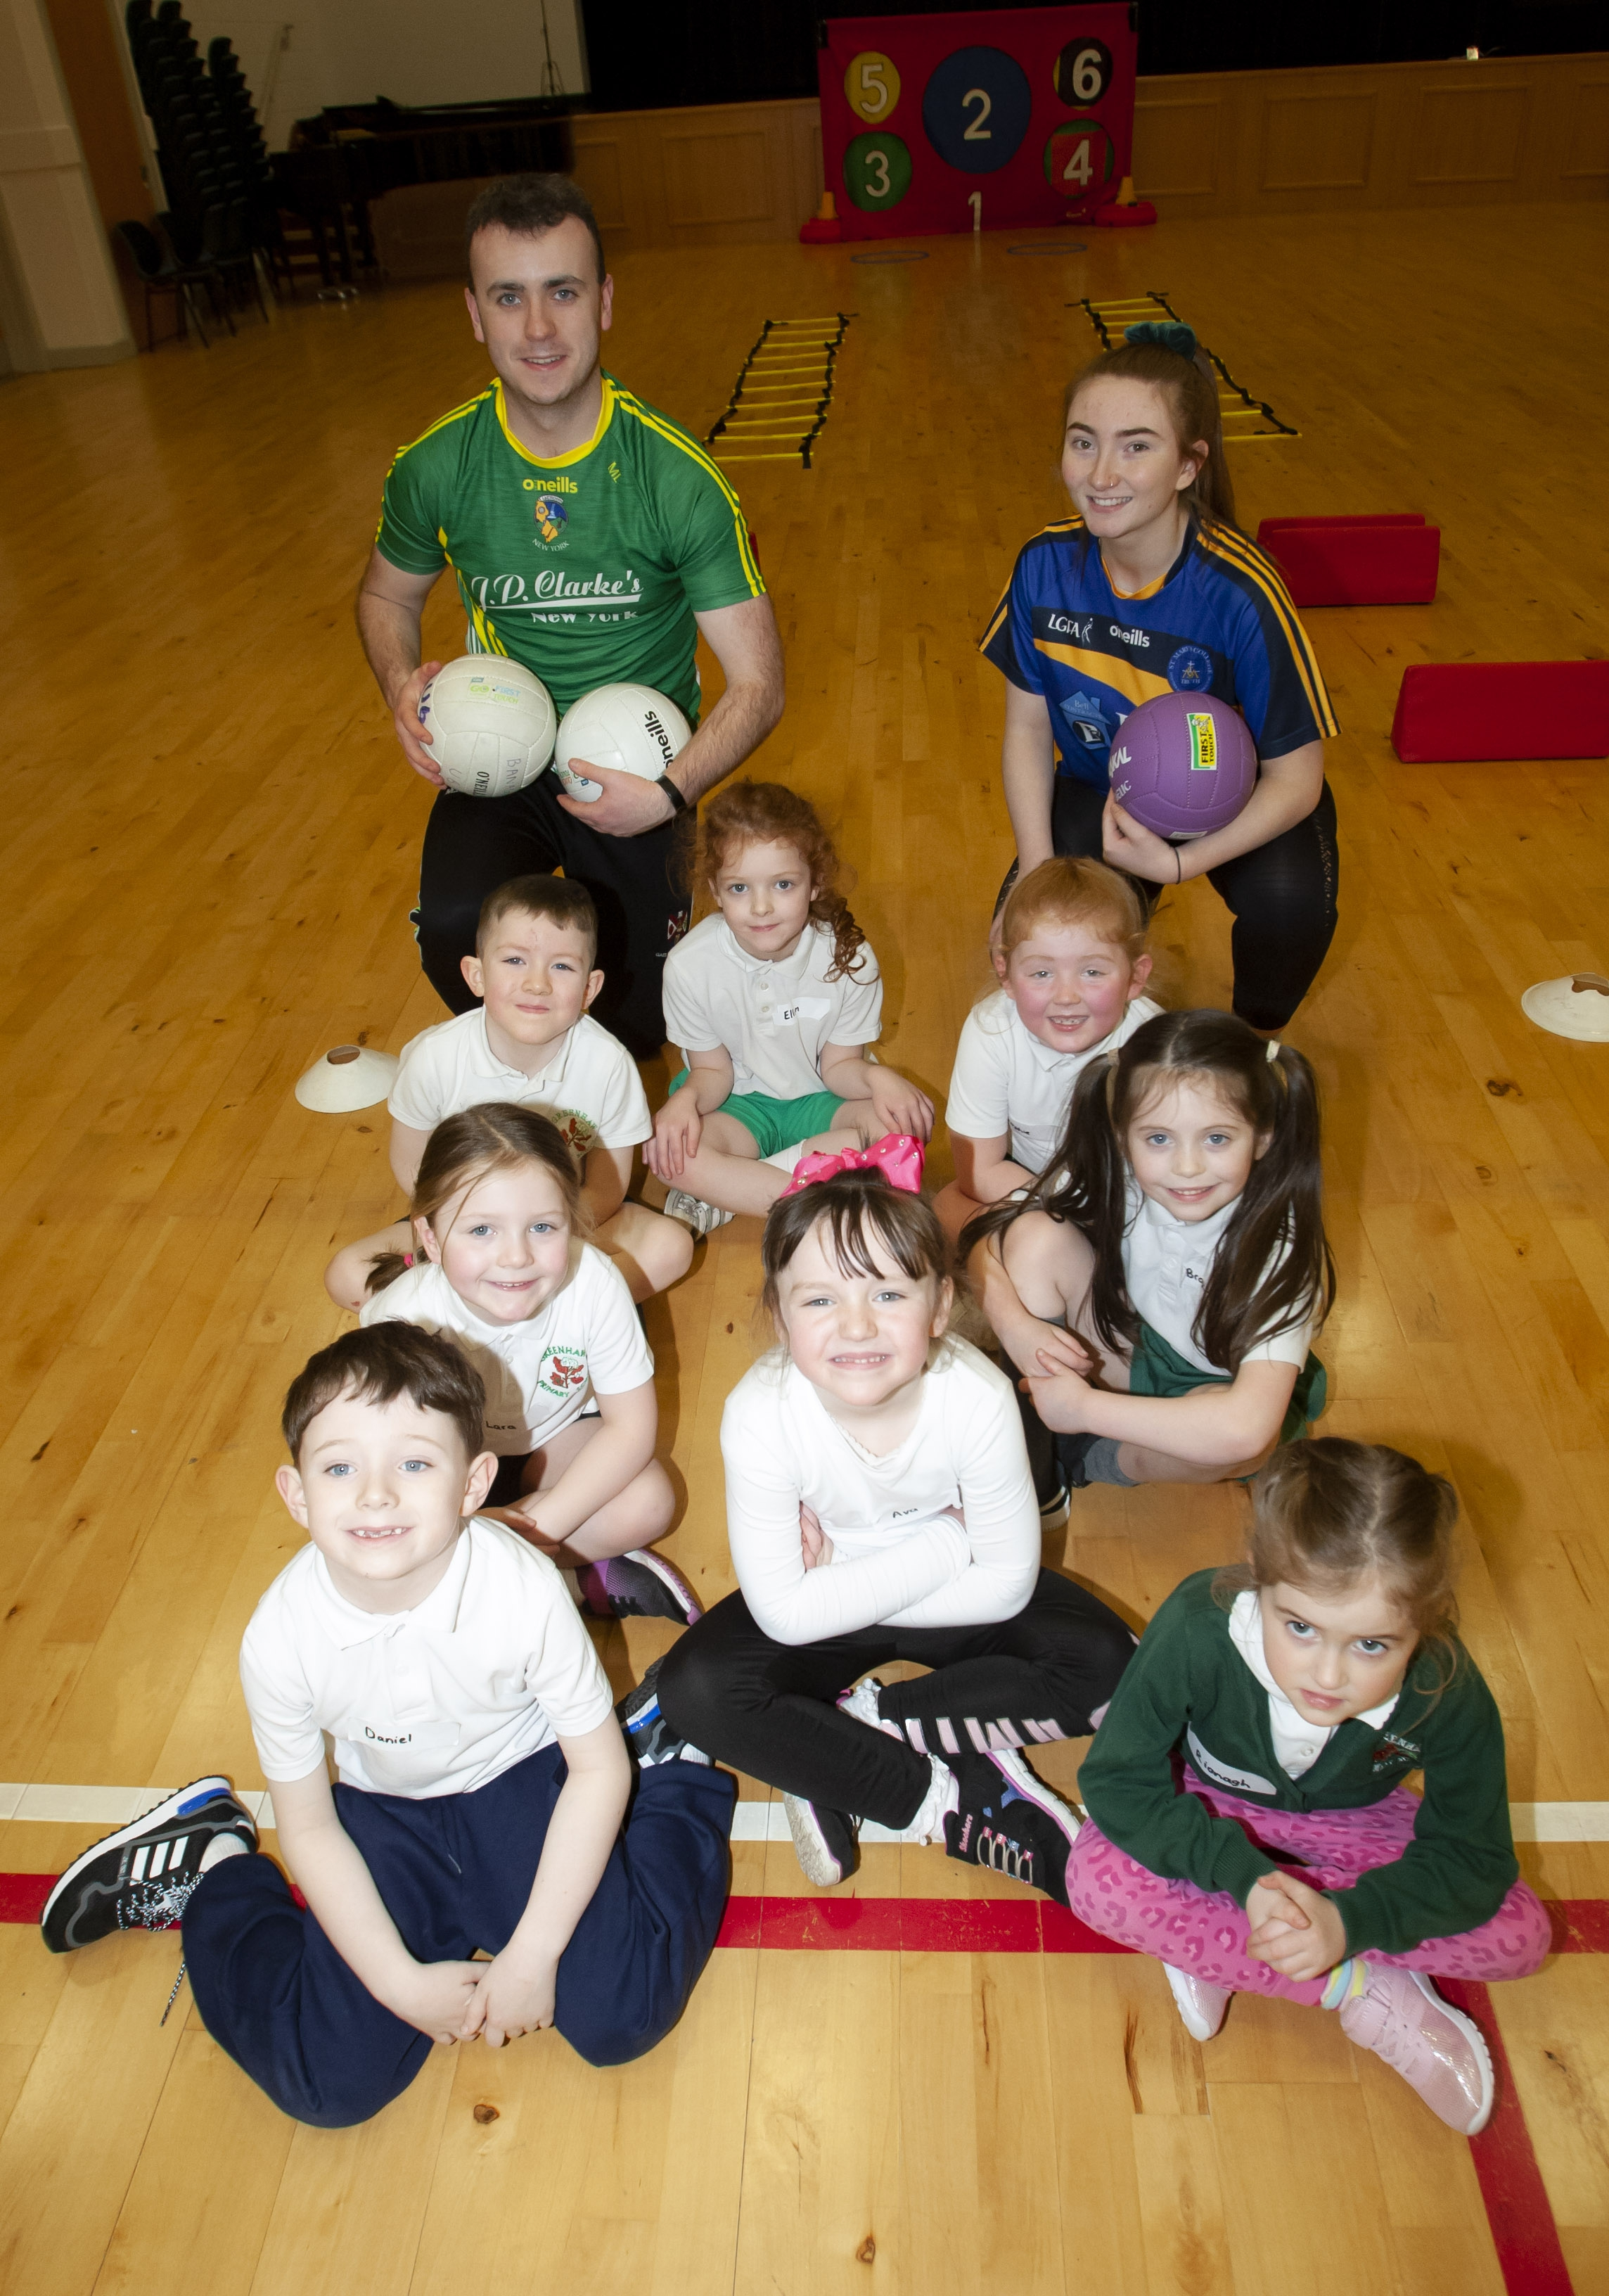 P2 pupils from Greenhaw PS pictured with Martin Lynch and Megan Doherty at the start of Friday's Health Promotion Week Primary Schools event in St. Mary's College.